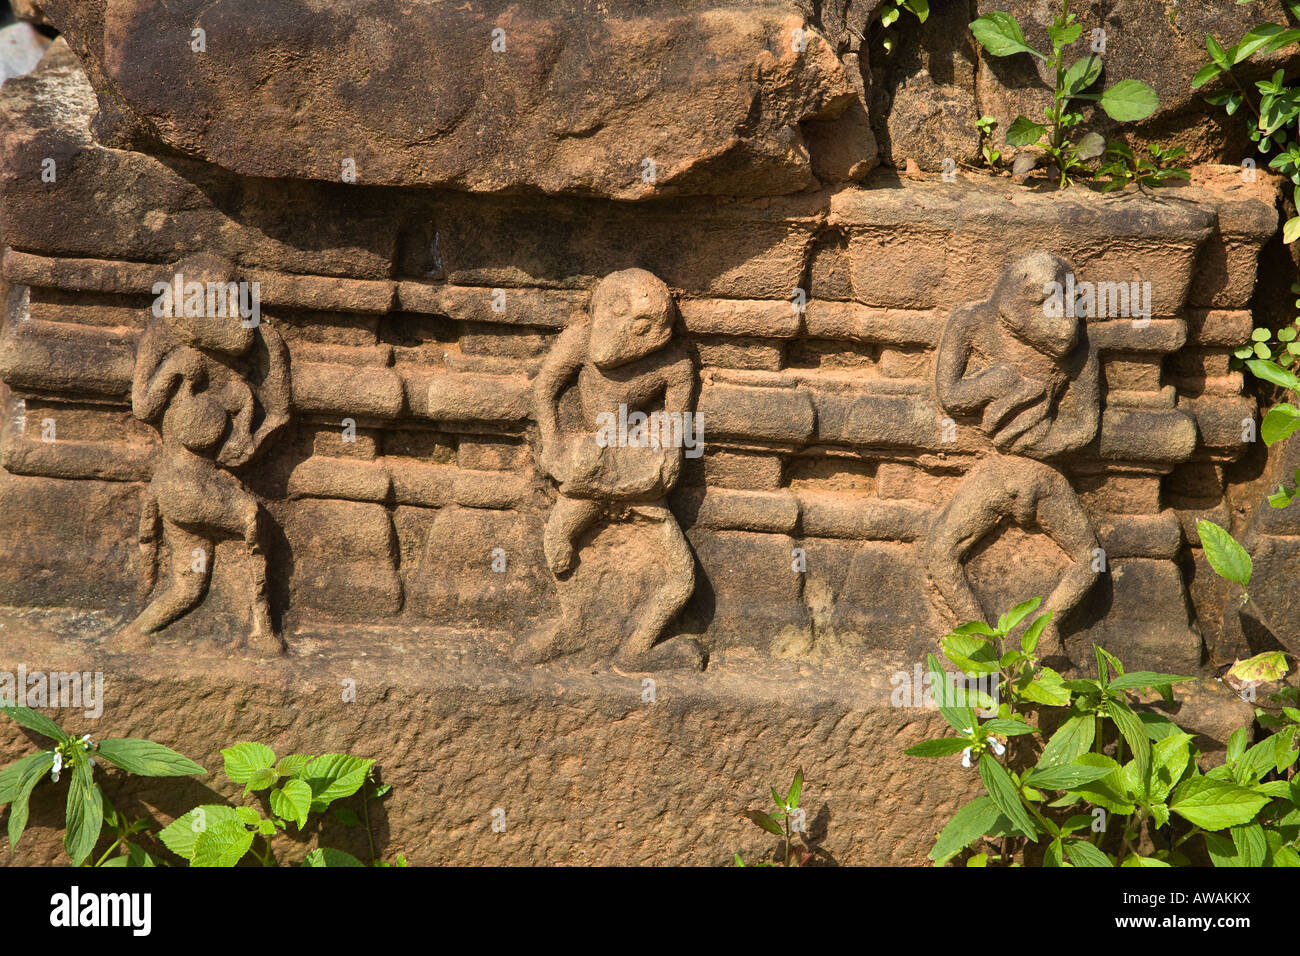 Ancient wall carvings of dancing monkeys reflect the